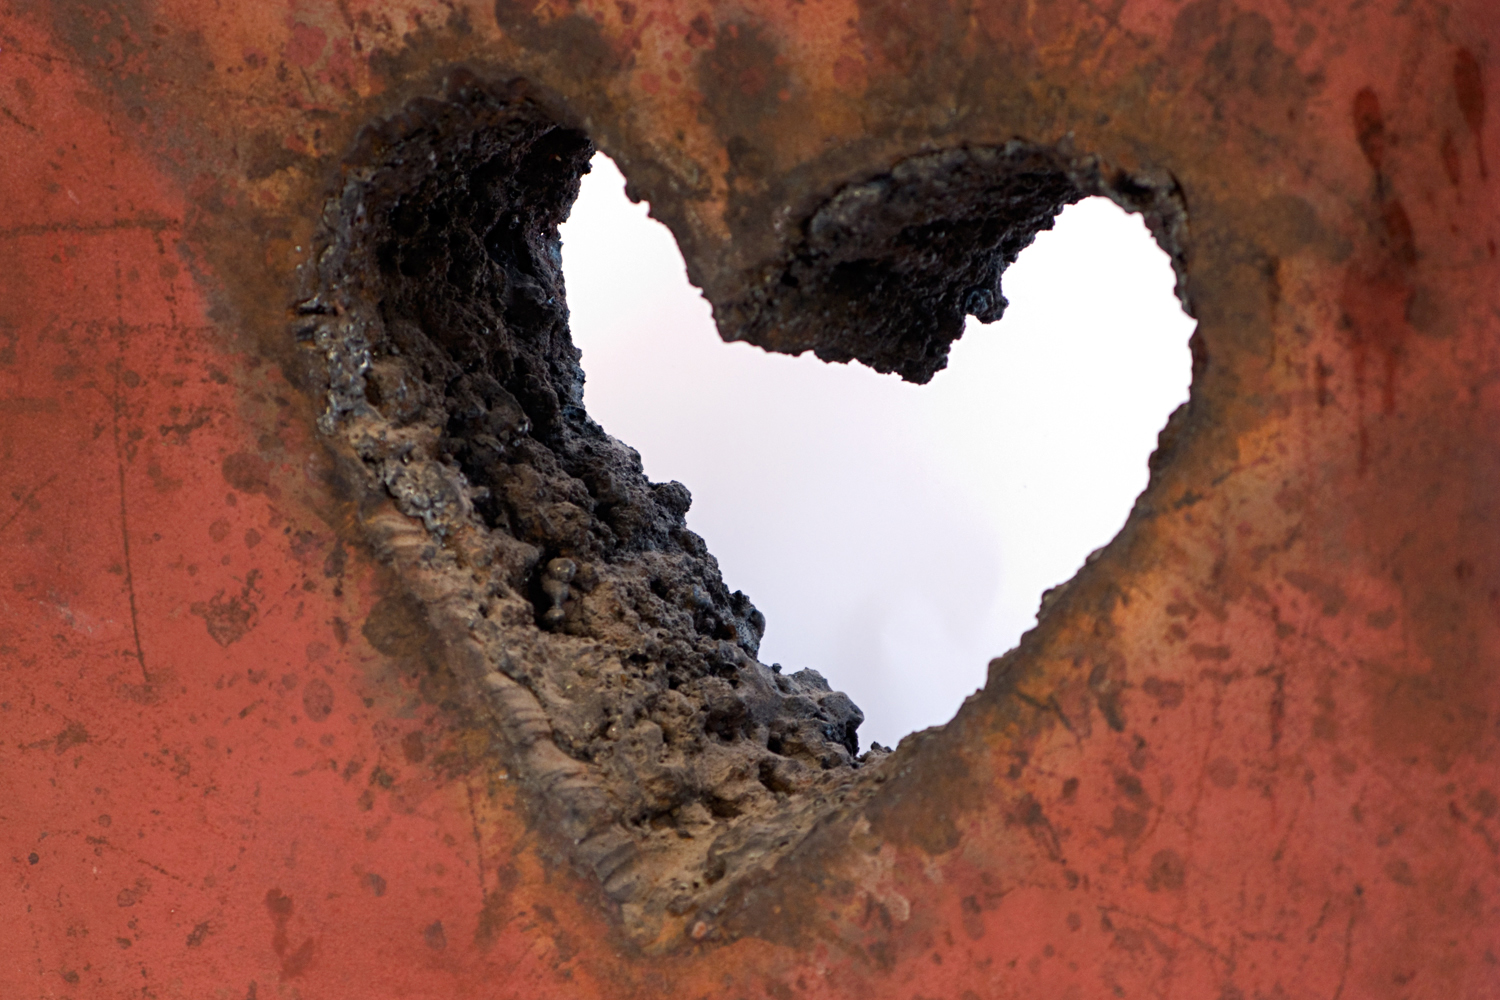 Untitled (Torched Heart)